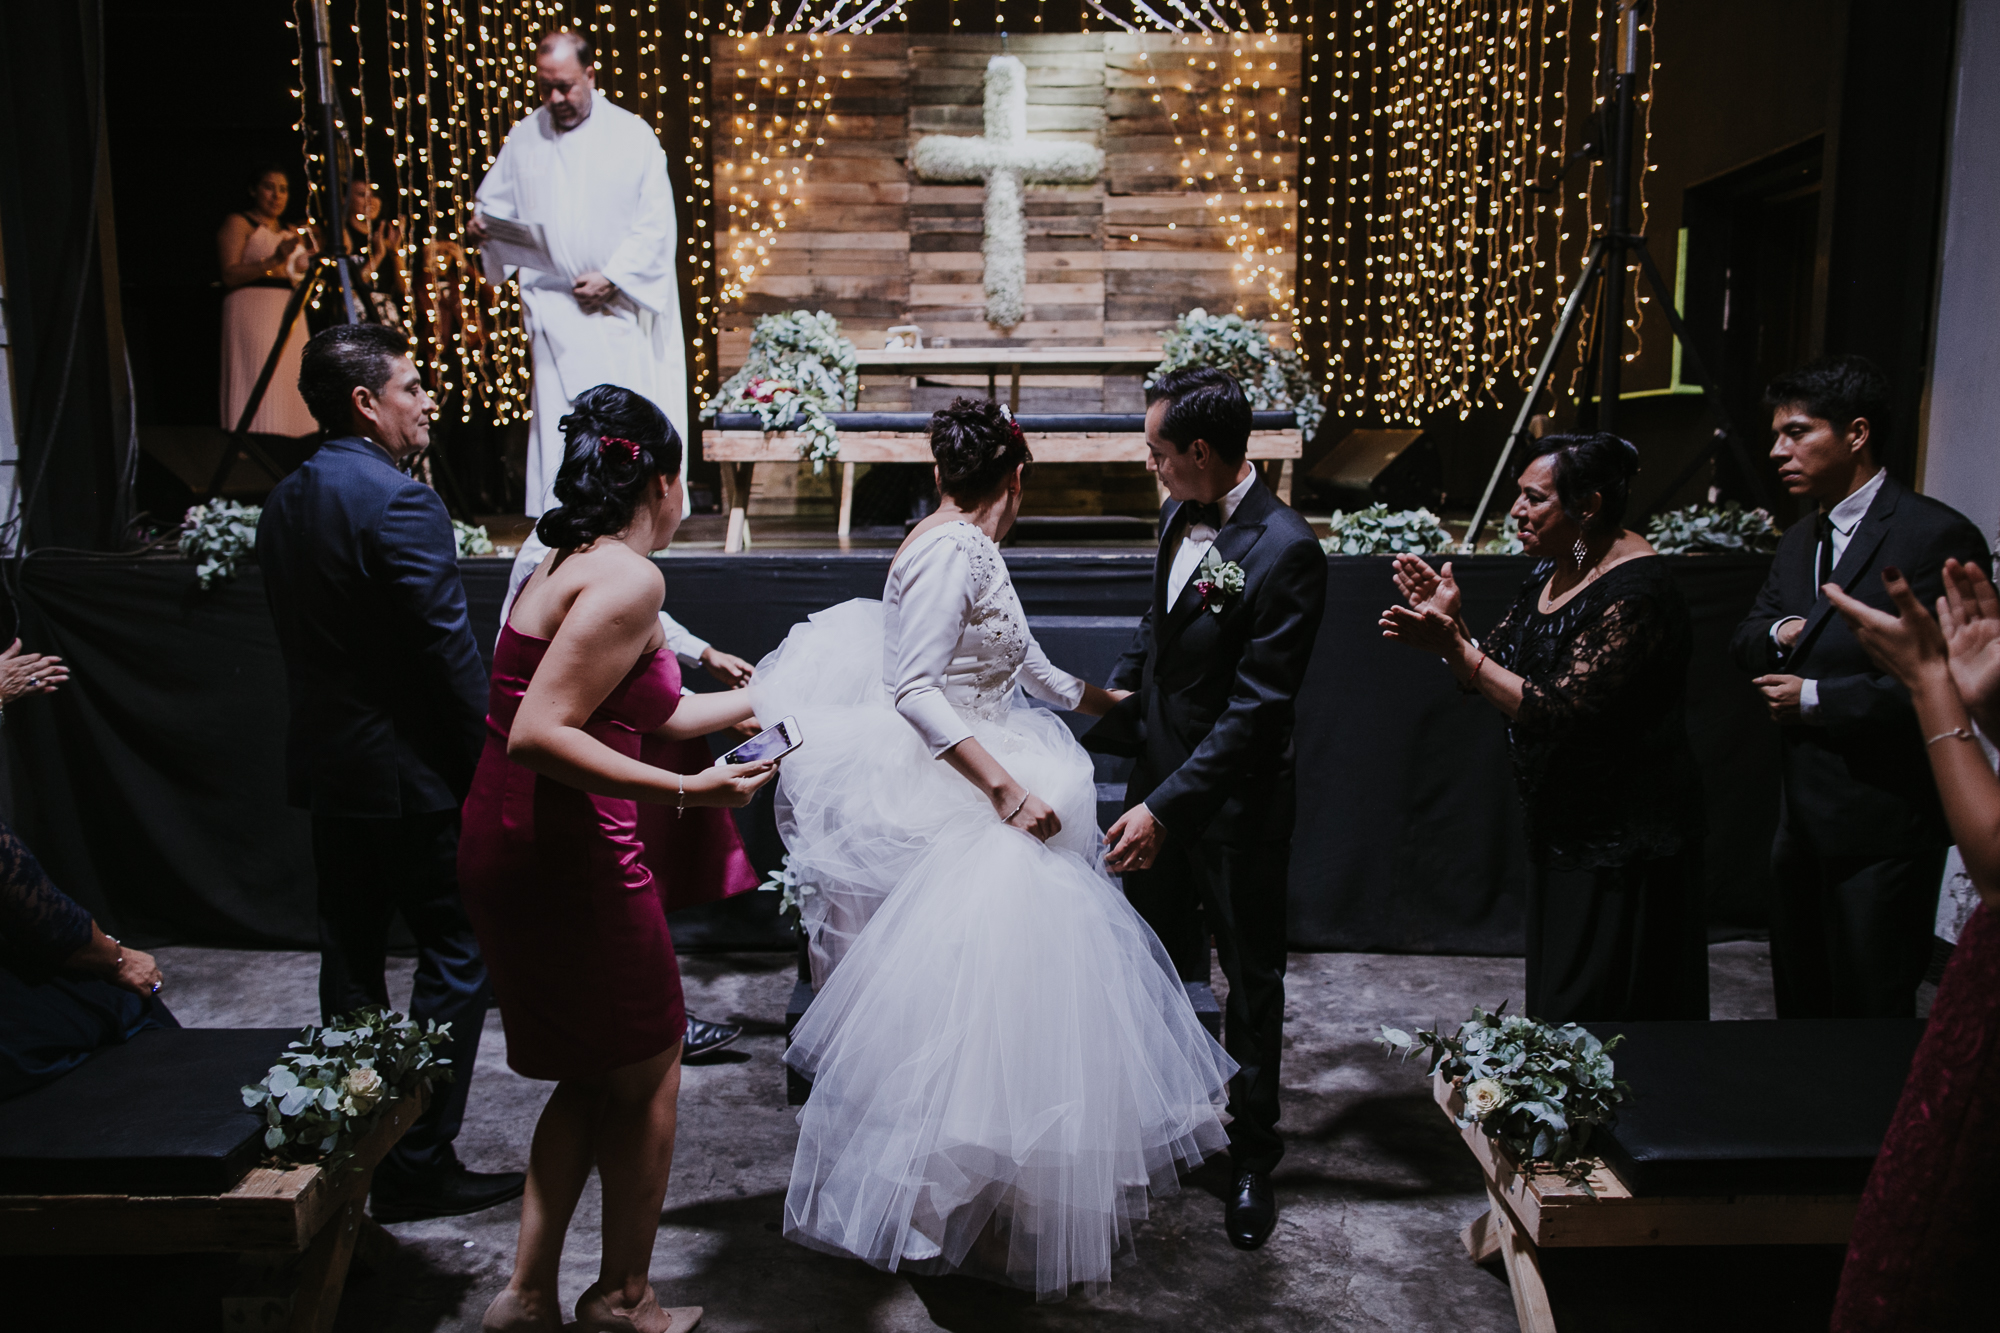 alfonso_flores_alternative_wedding_photographer_cdmx_roma_condesa_foro_indie_gissyotto-83.jpg